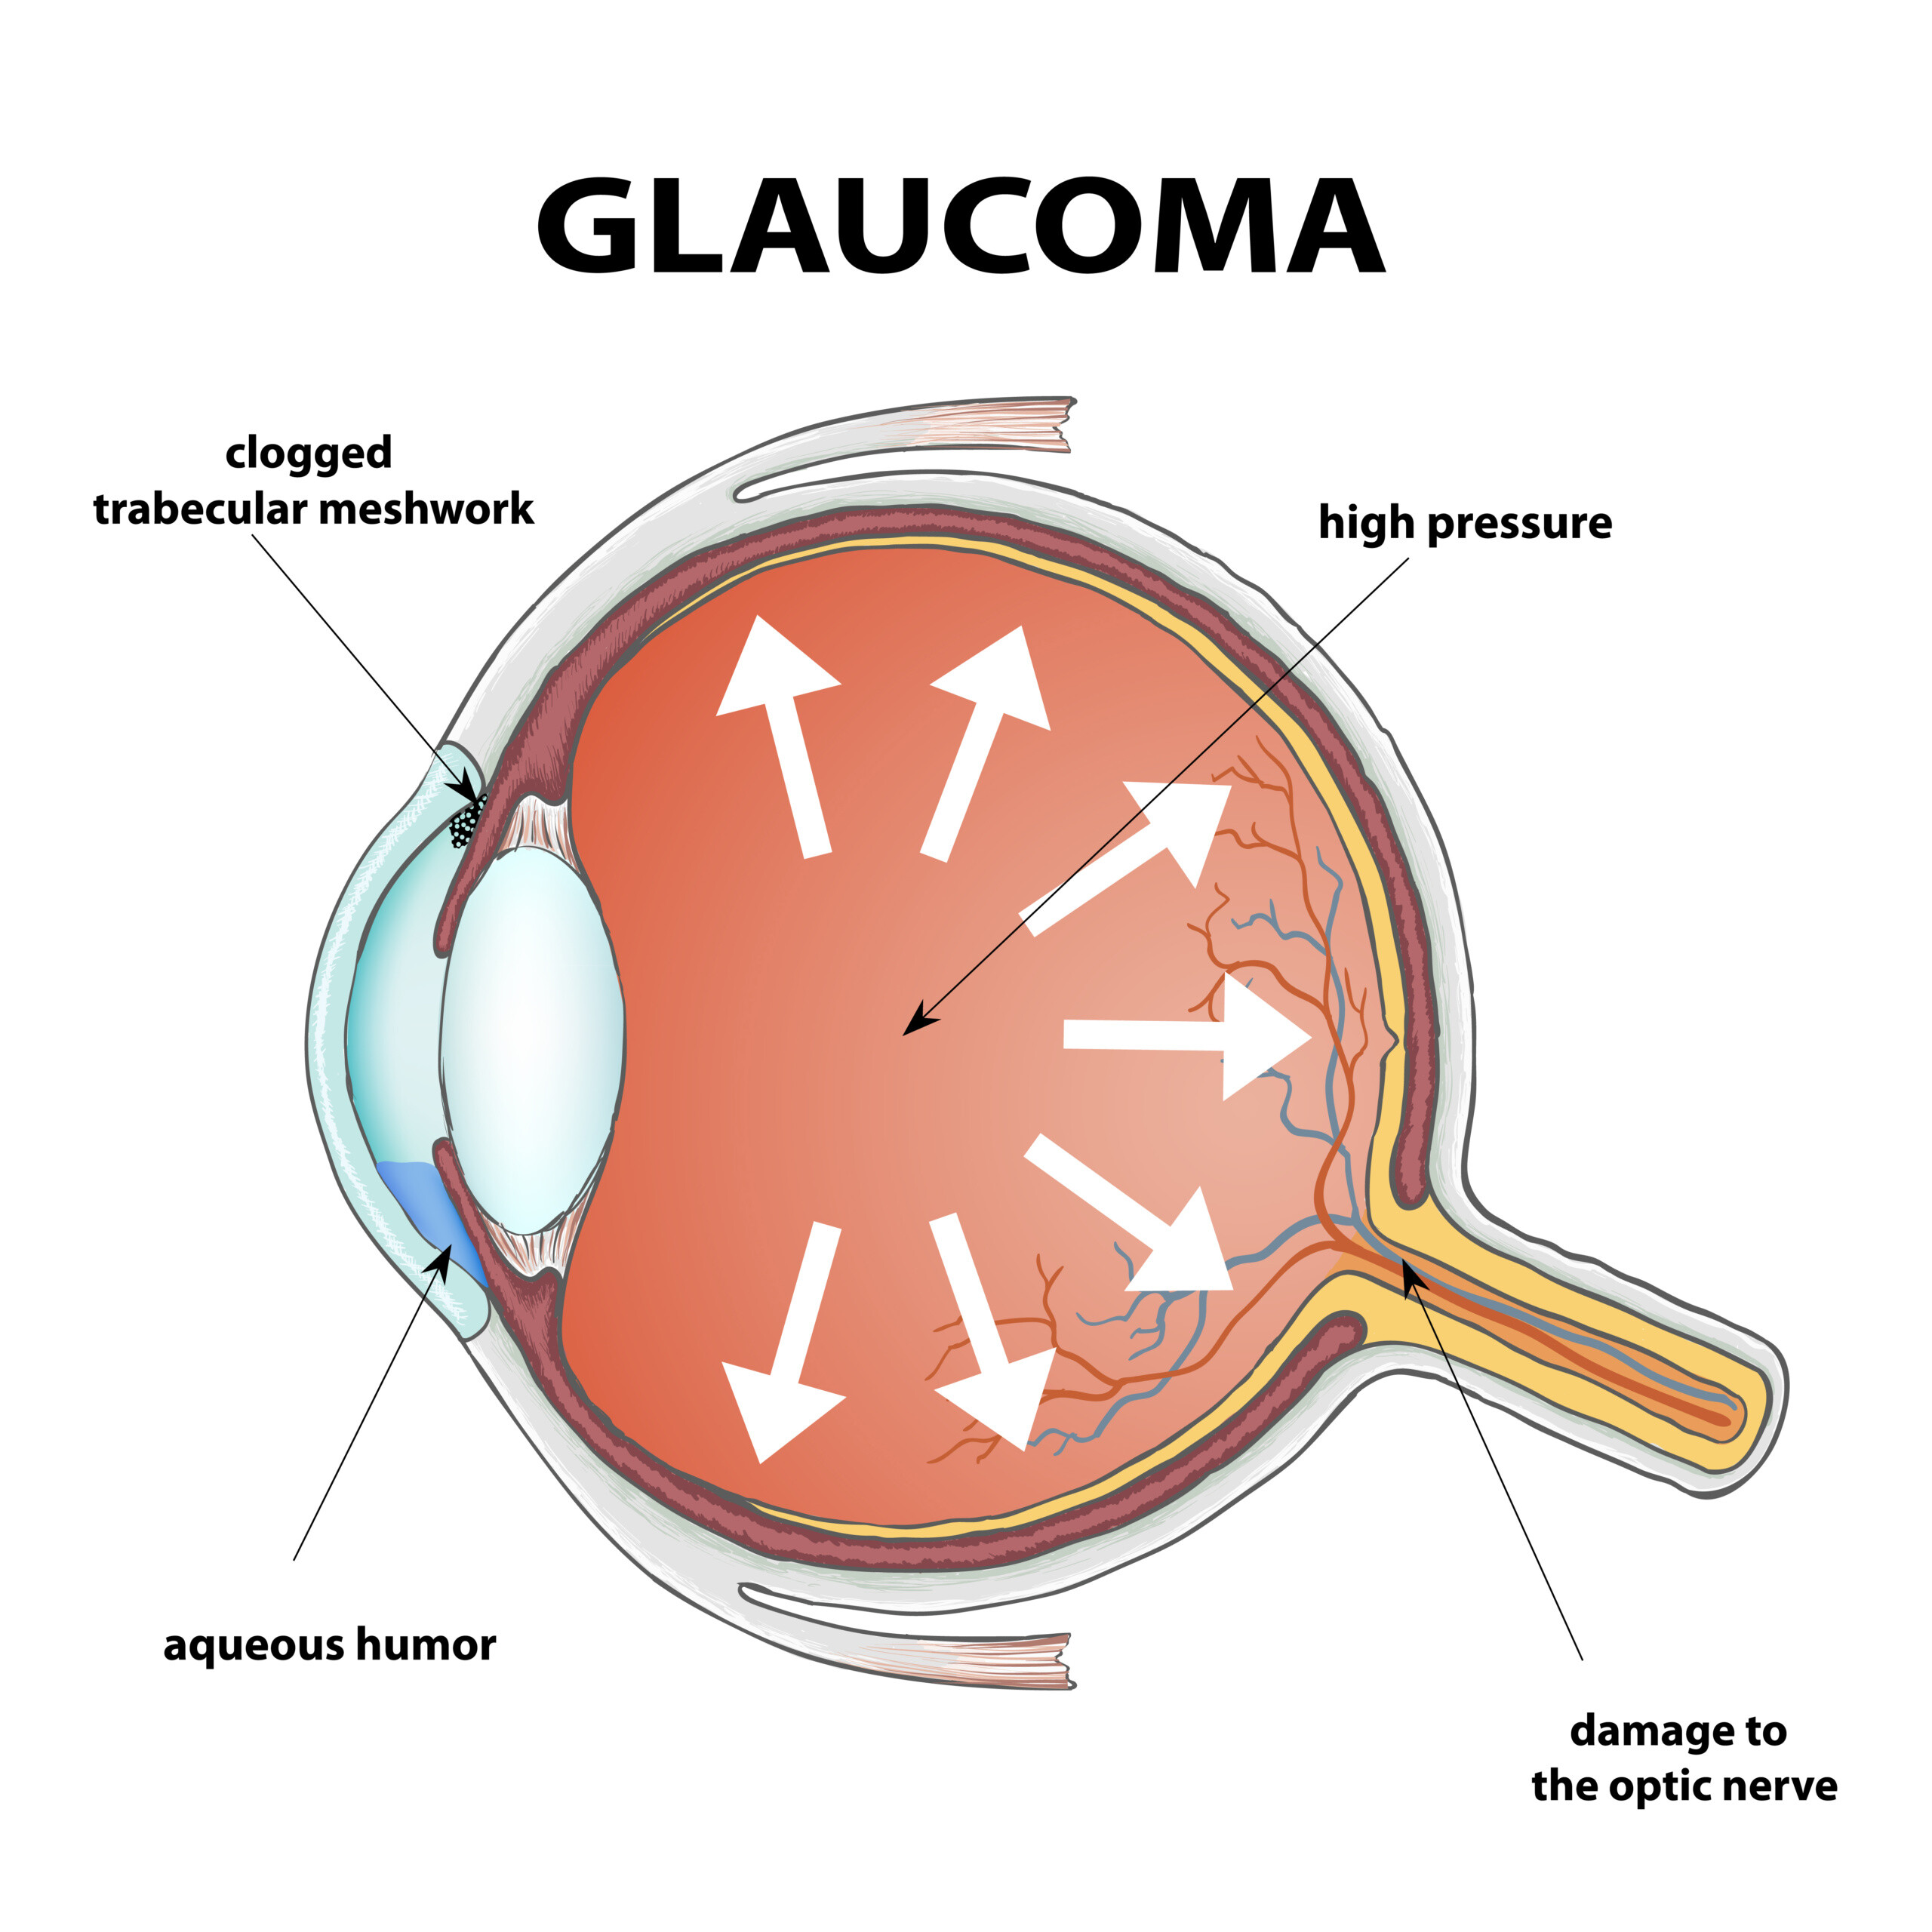 7 Facts You Should Know About Glaucoma